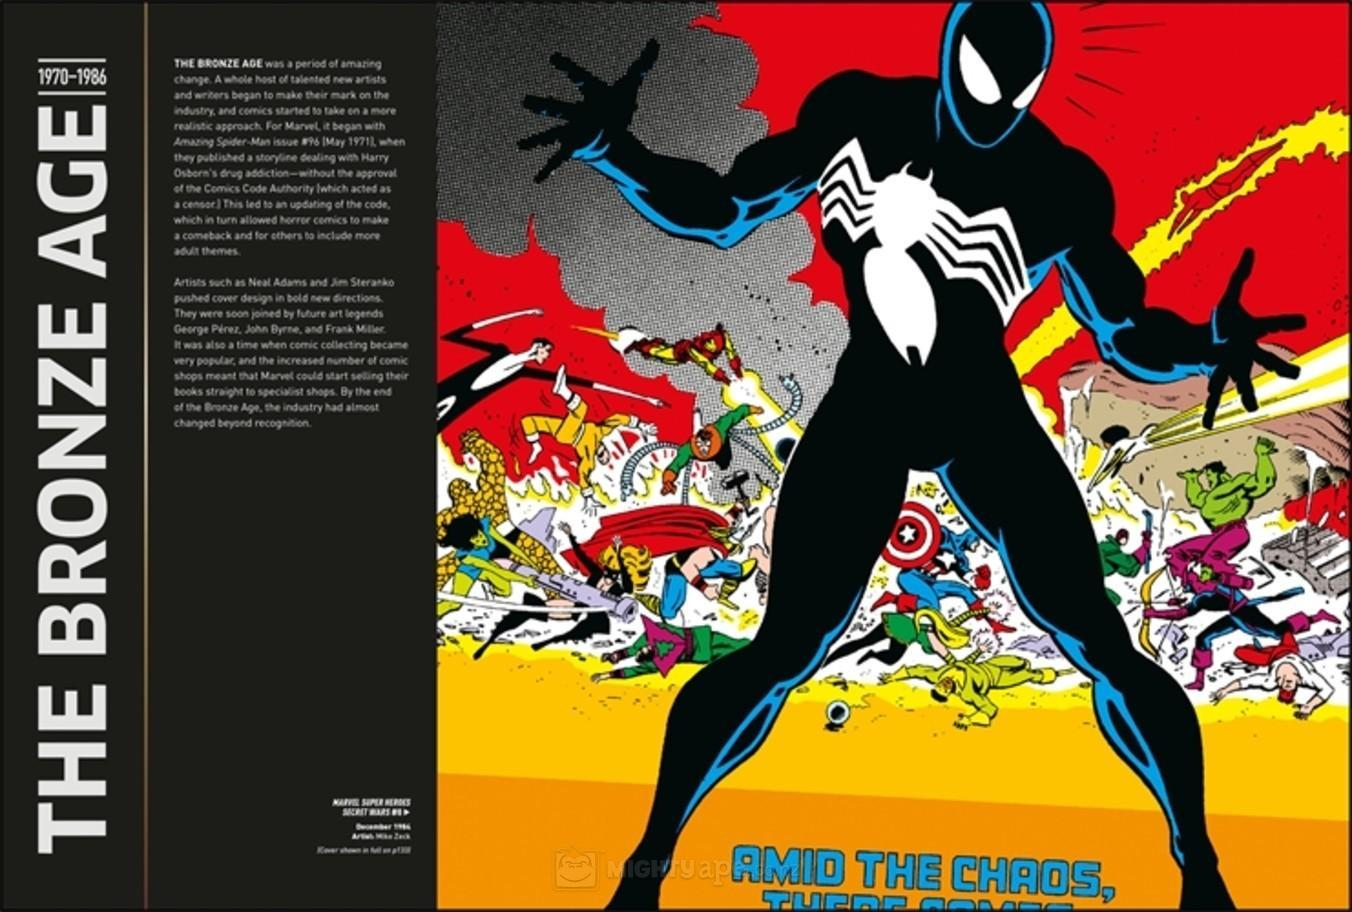 Marvel Comics: 75 Years of Cover Art by DK image